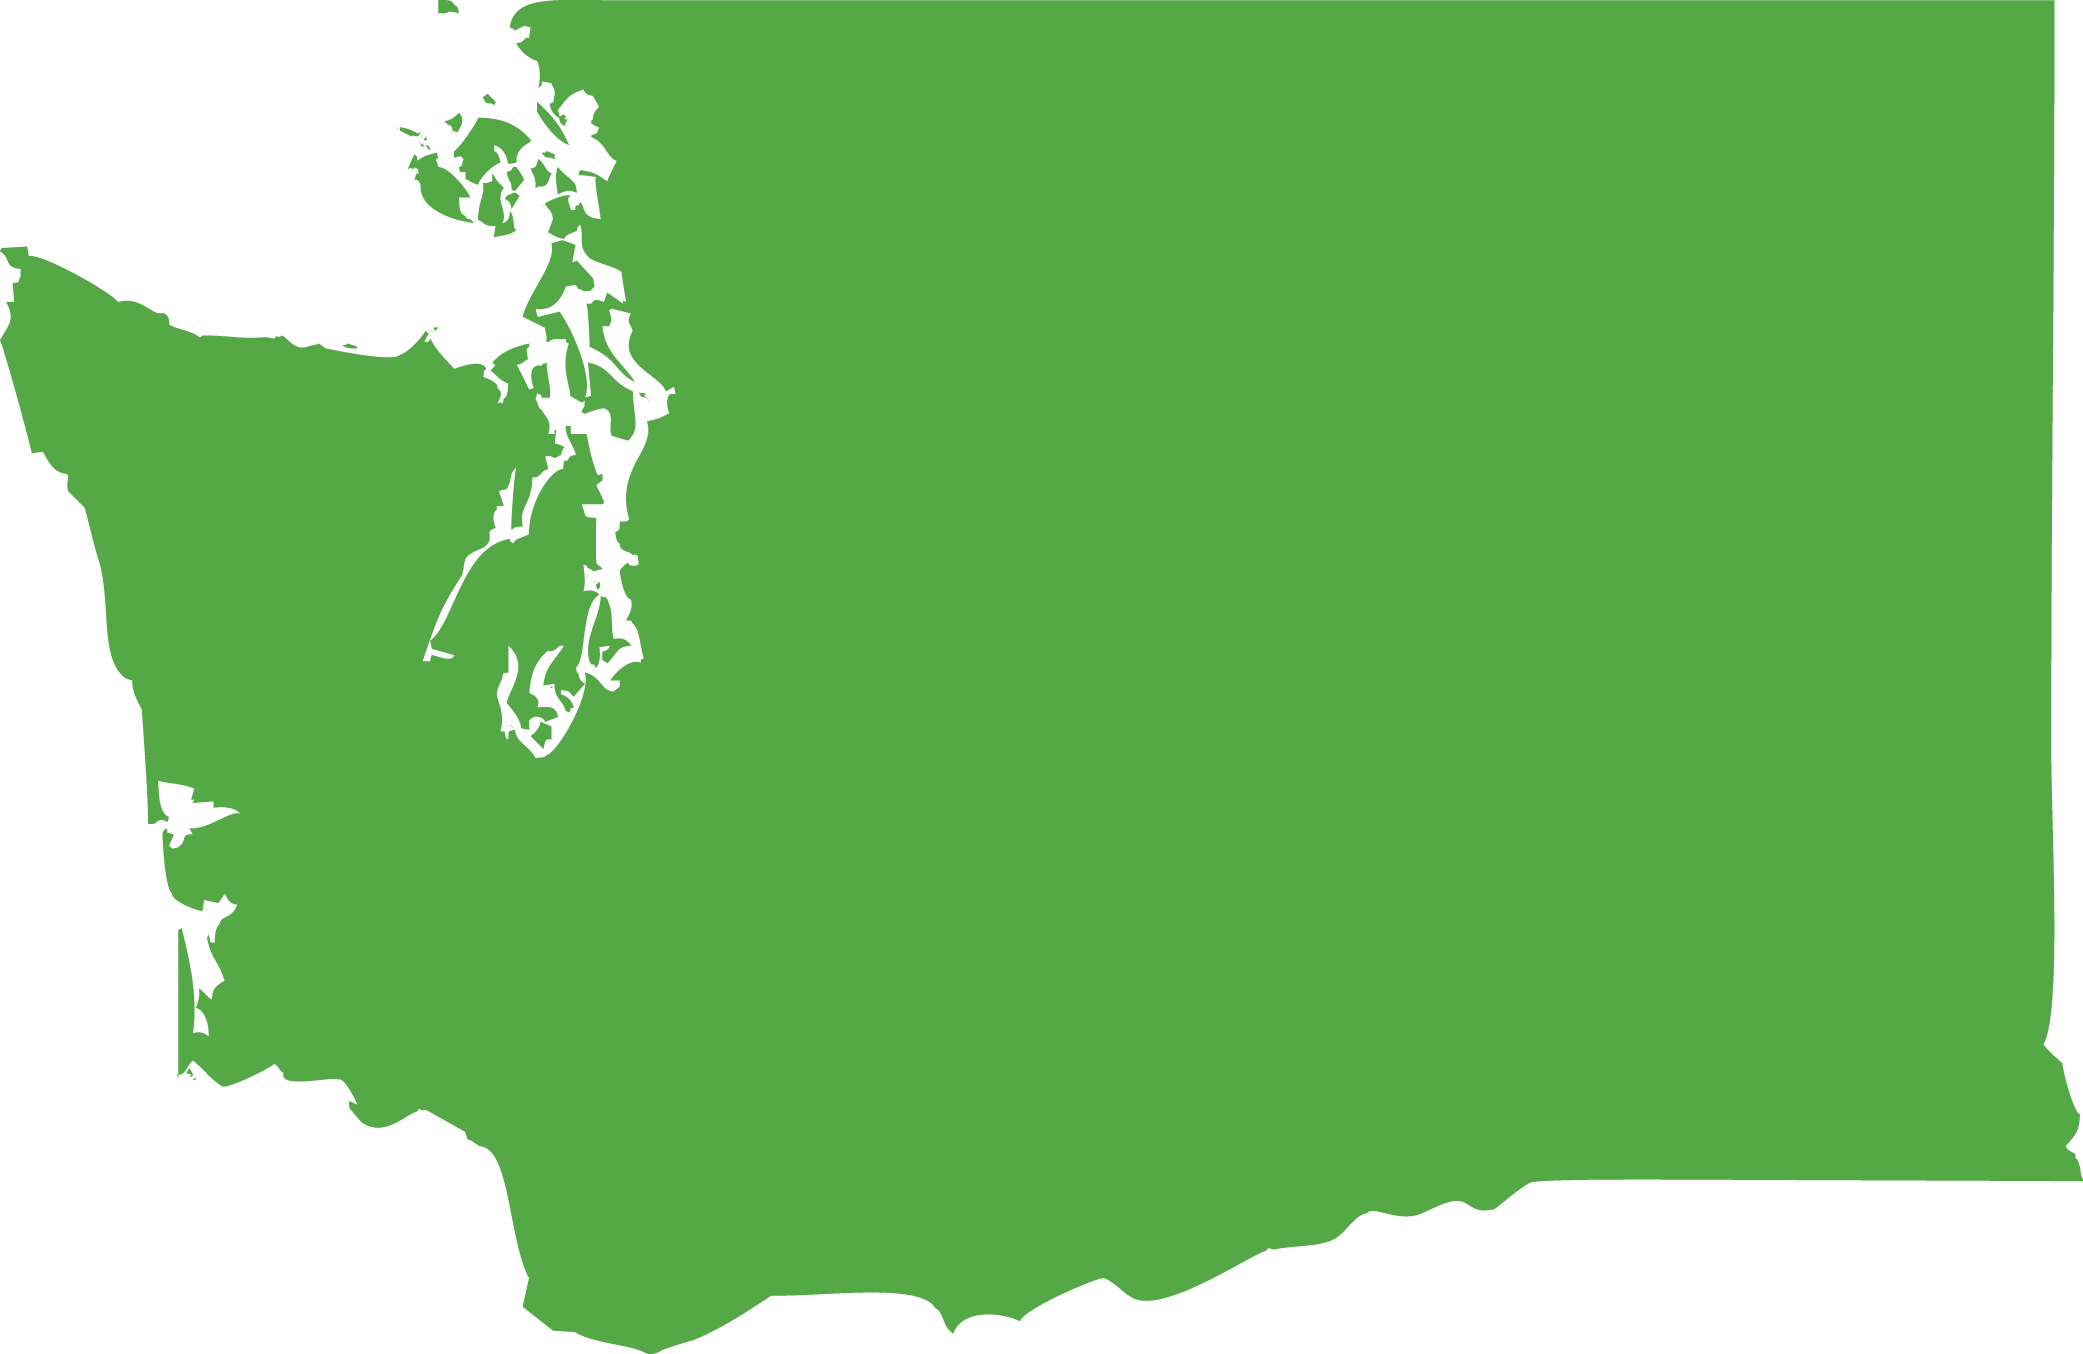 Washington State icon in lime green